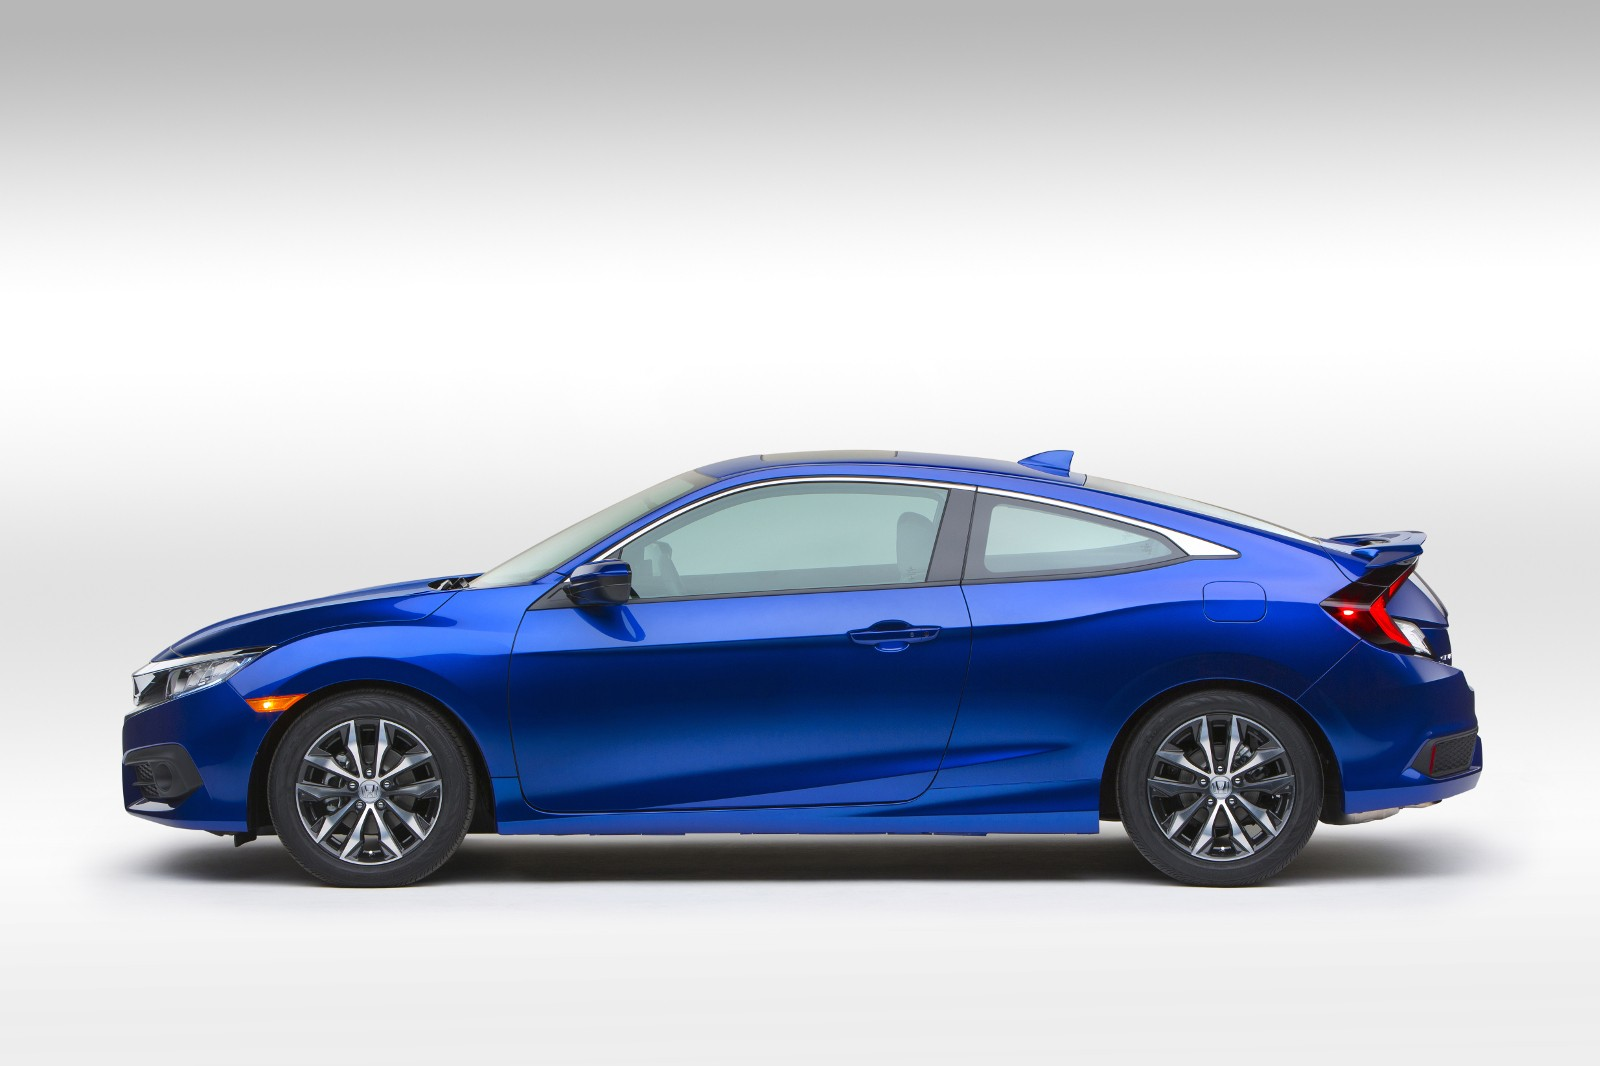 2016 honda civic coupe revealed with bigger cabin turbo. Black Bedroom Furniture Sets. Home Design Ideas